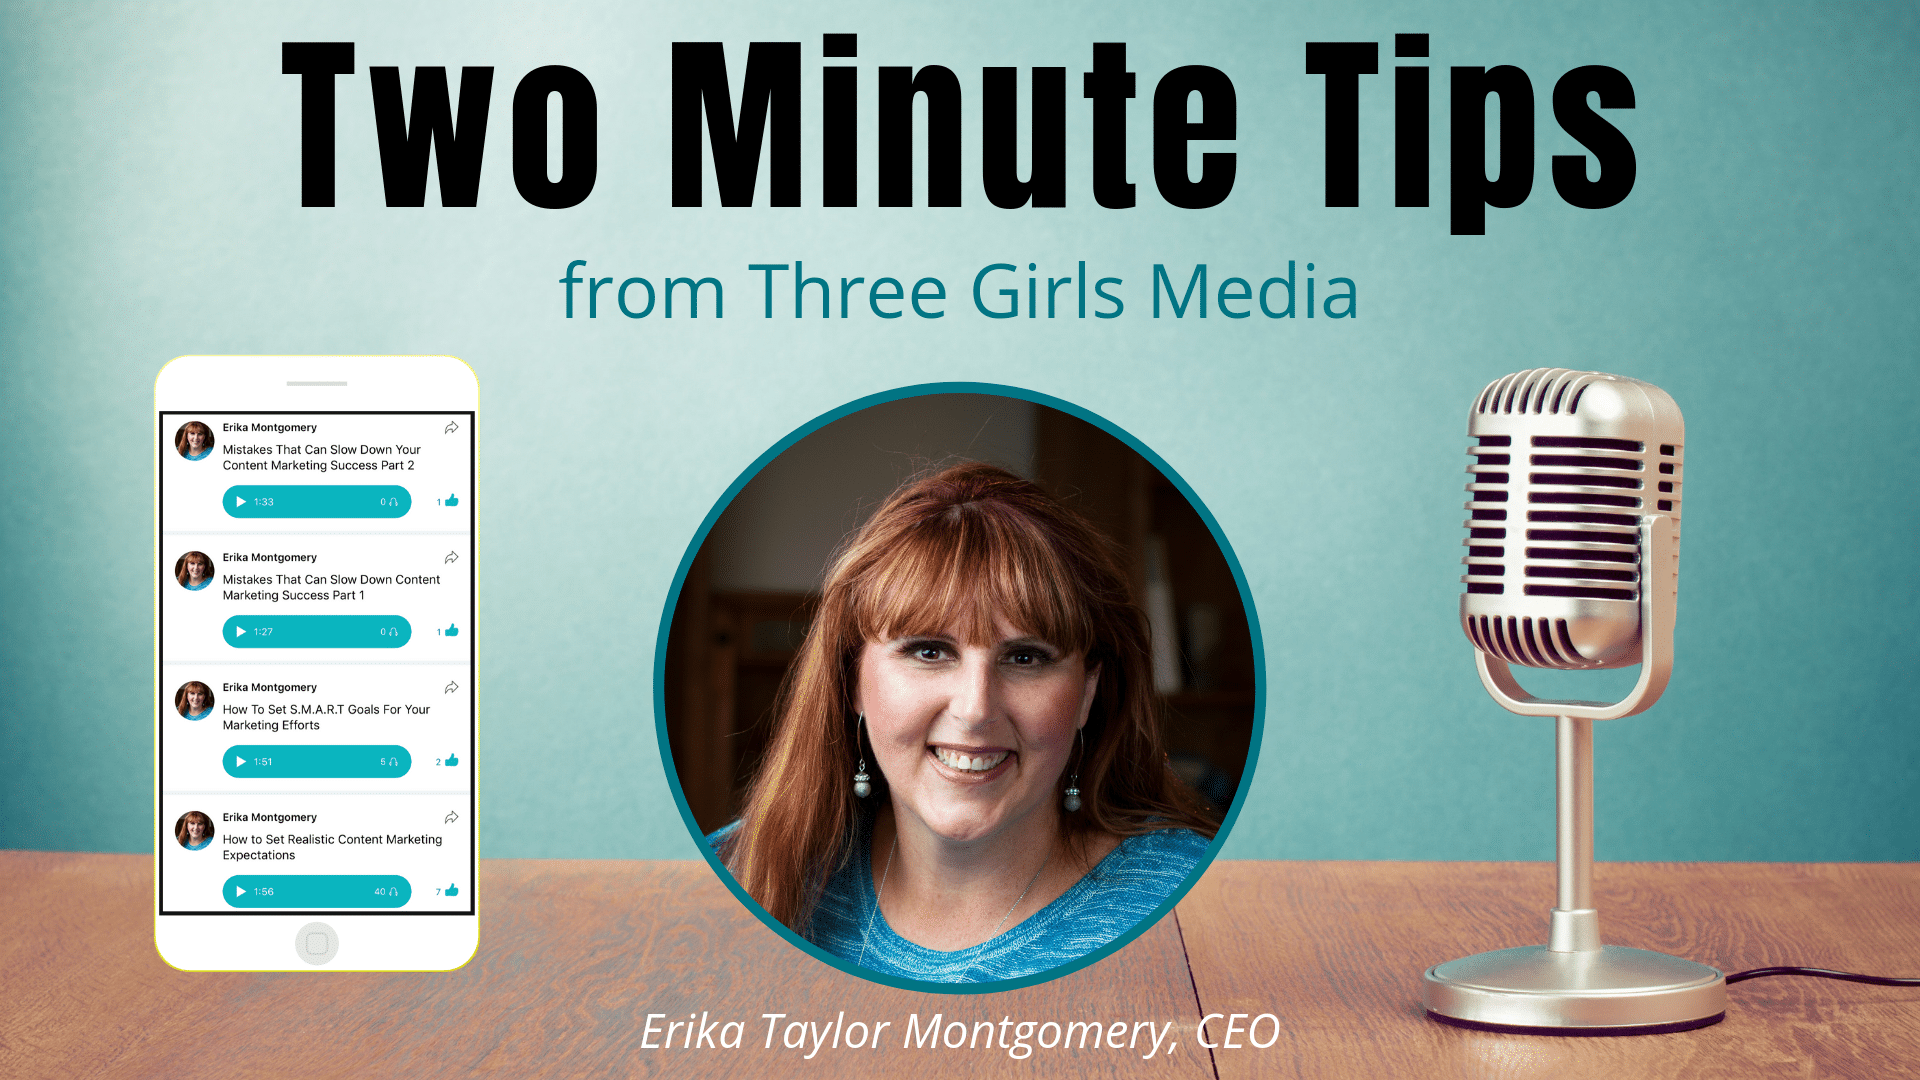 Two Minute Tips: How To Get Started In Digital Marketing (Part 2)